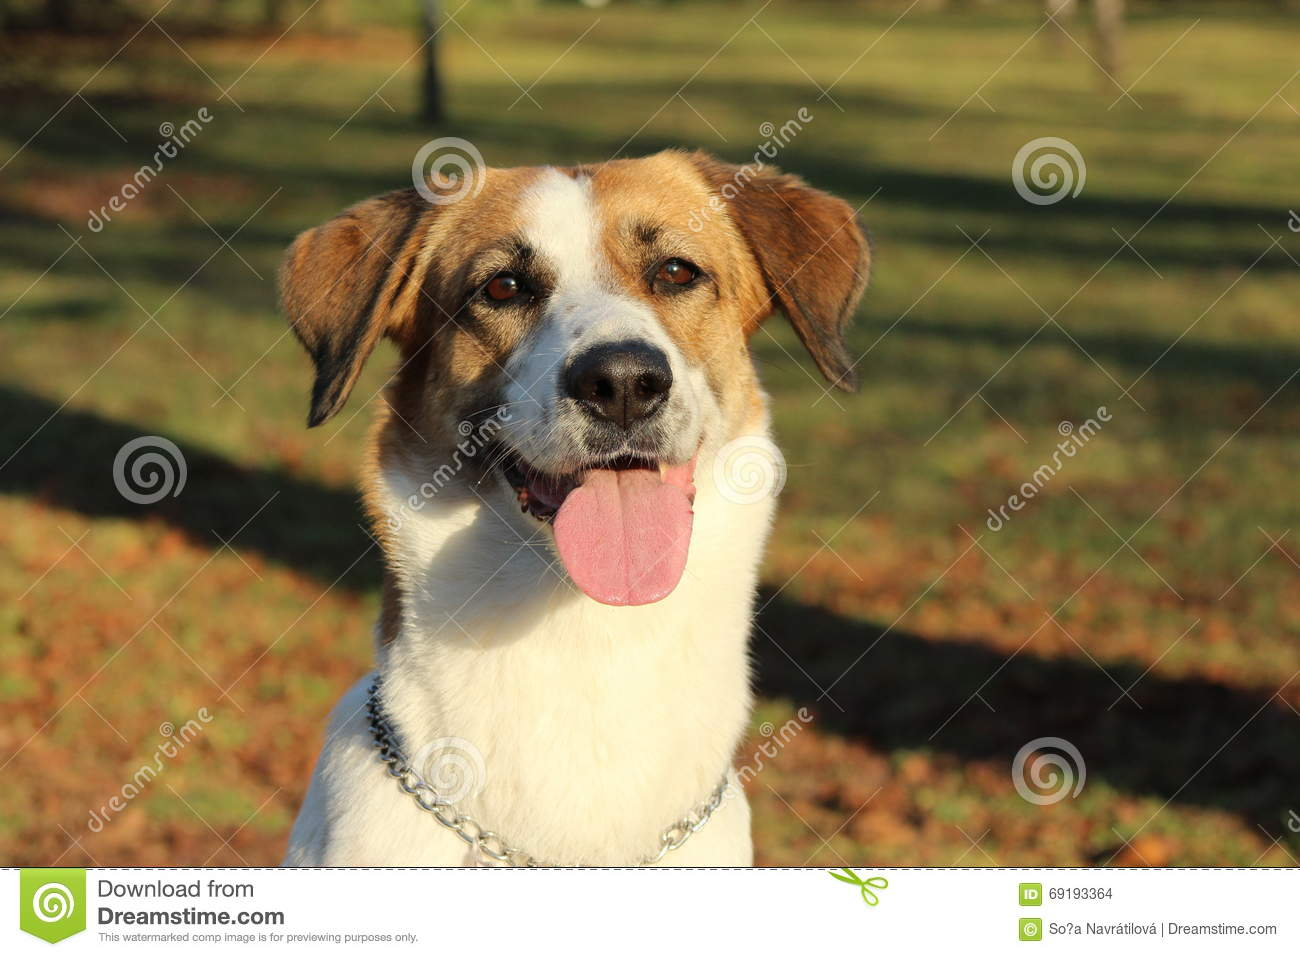 Happy Dog Stock Photo - Image: 69193364 - photo#30